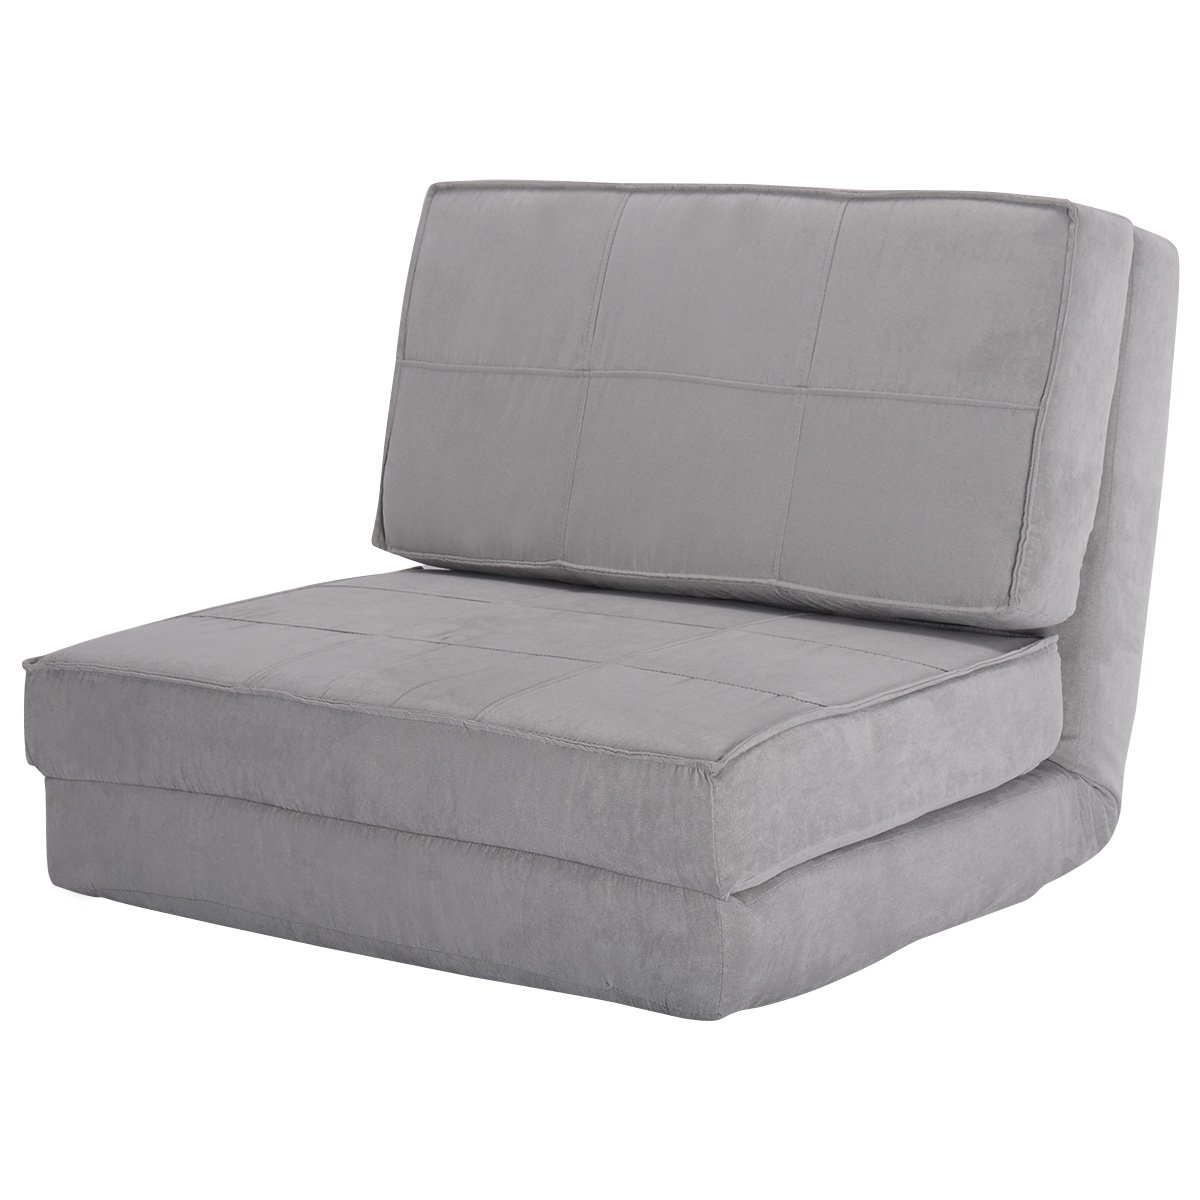 out ip walmart bed com chair sleeper twin pull fold inflatable intex mattress and